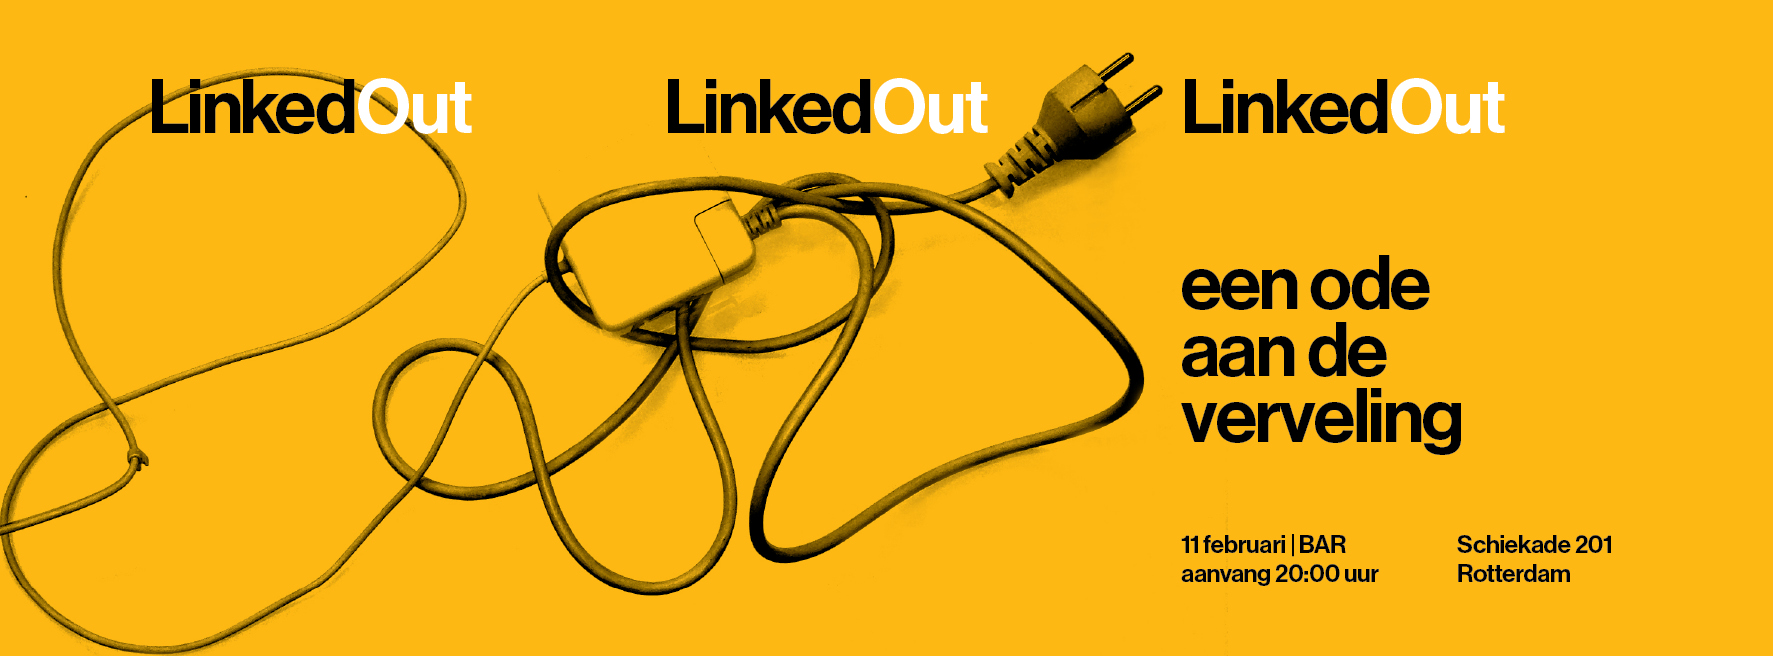 Linked Out flyer